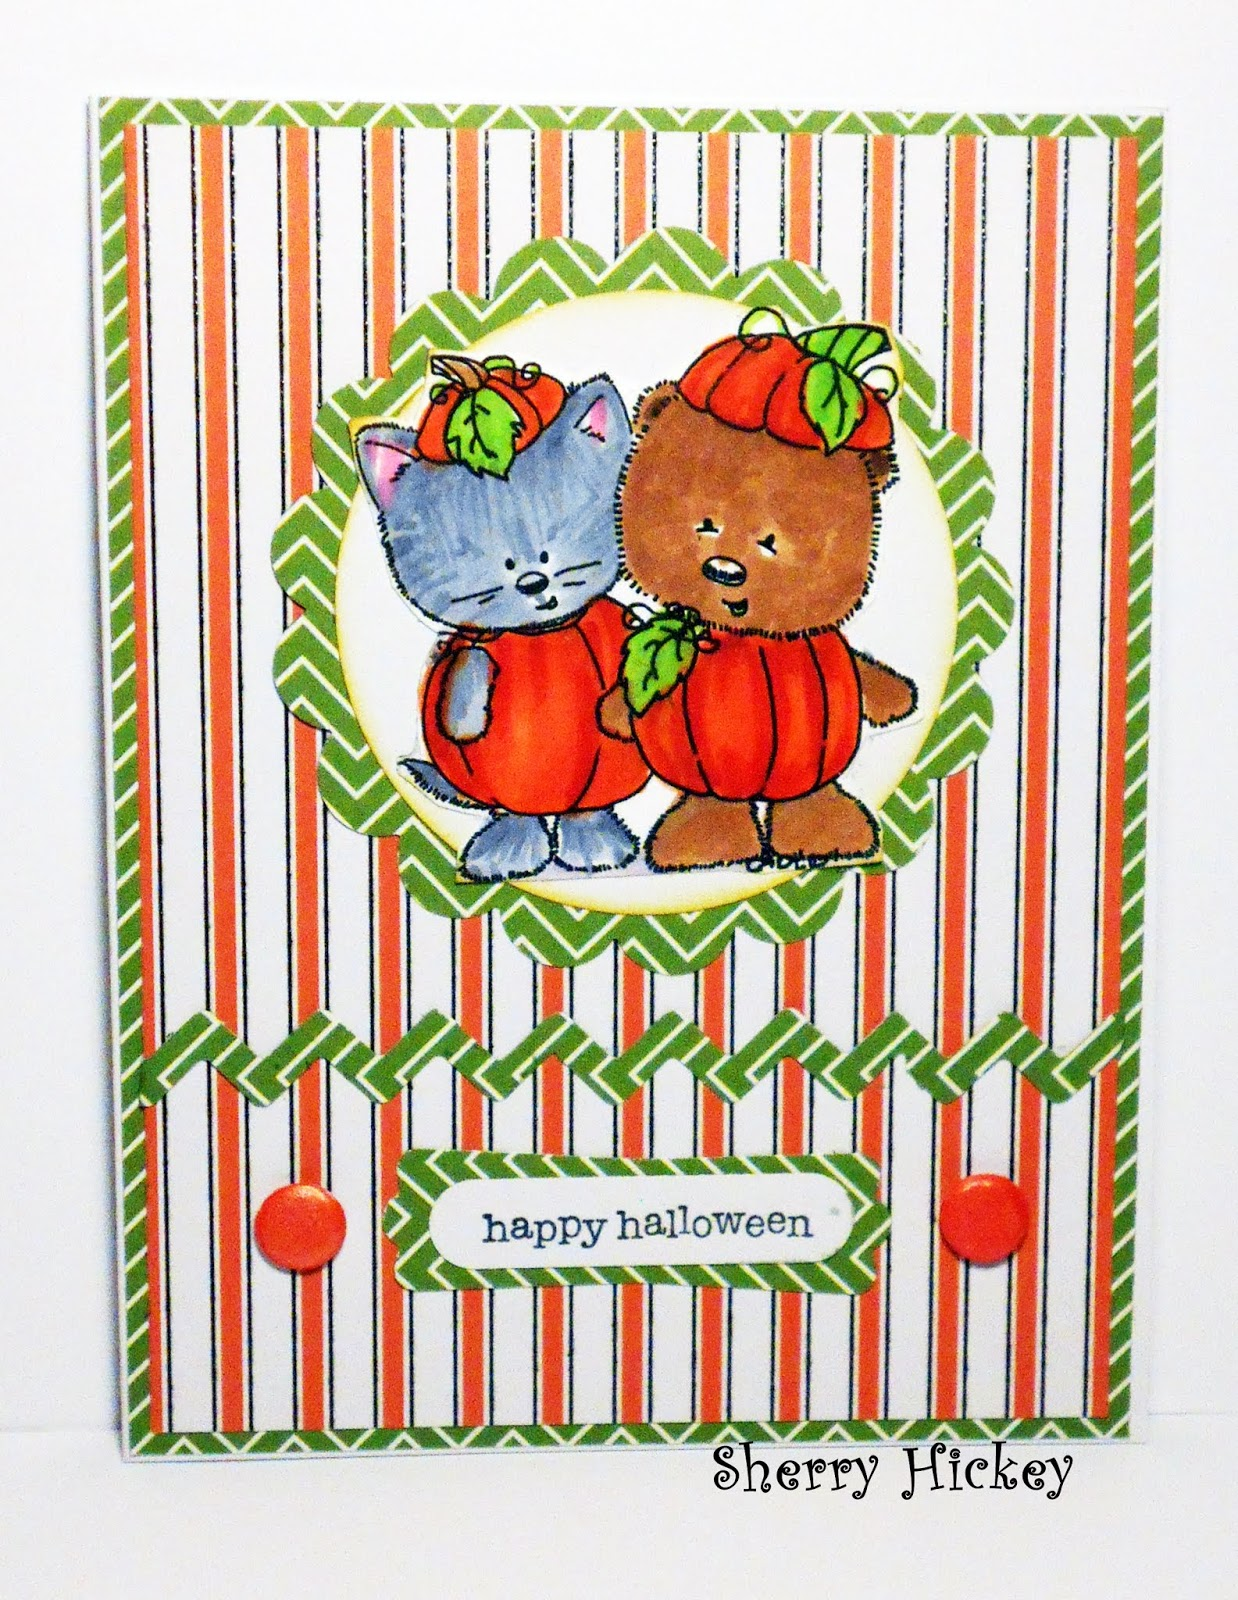 the new challenge at send a smile 4 kids is cute fall or halloween cards 4 kids or anything goes 4 kids here is a cute halloween card i made with a